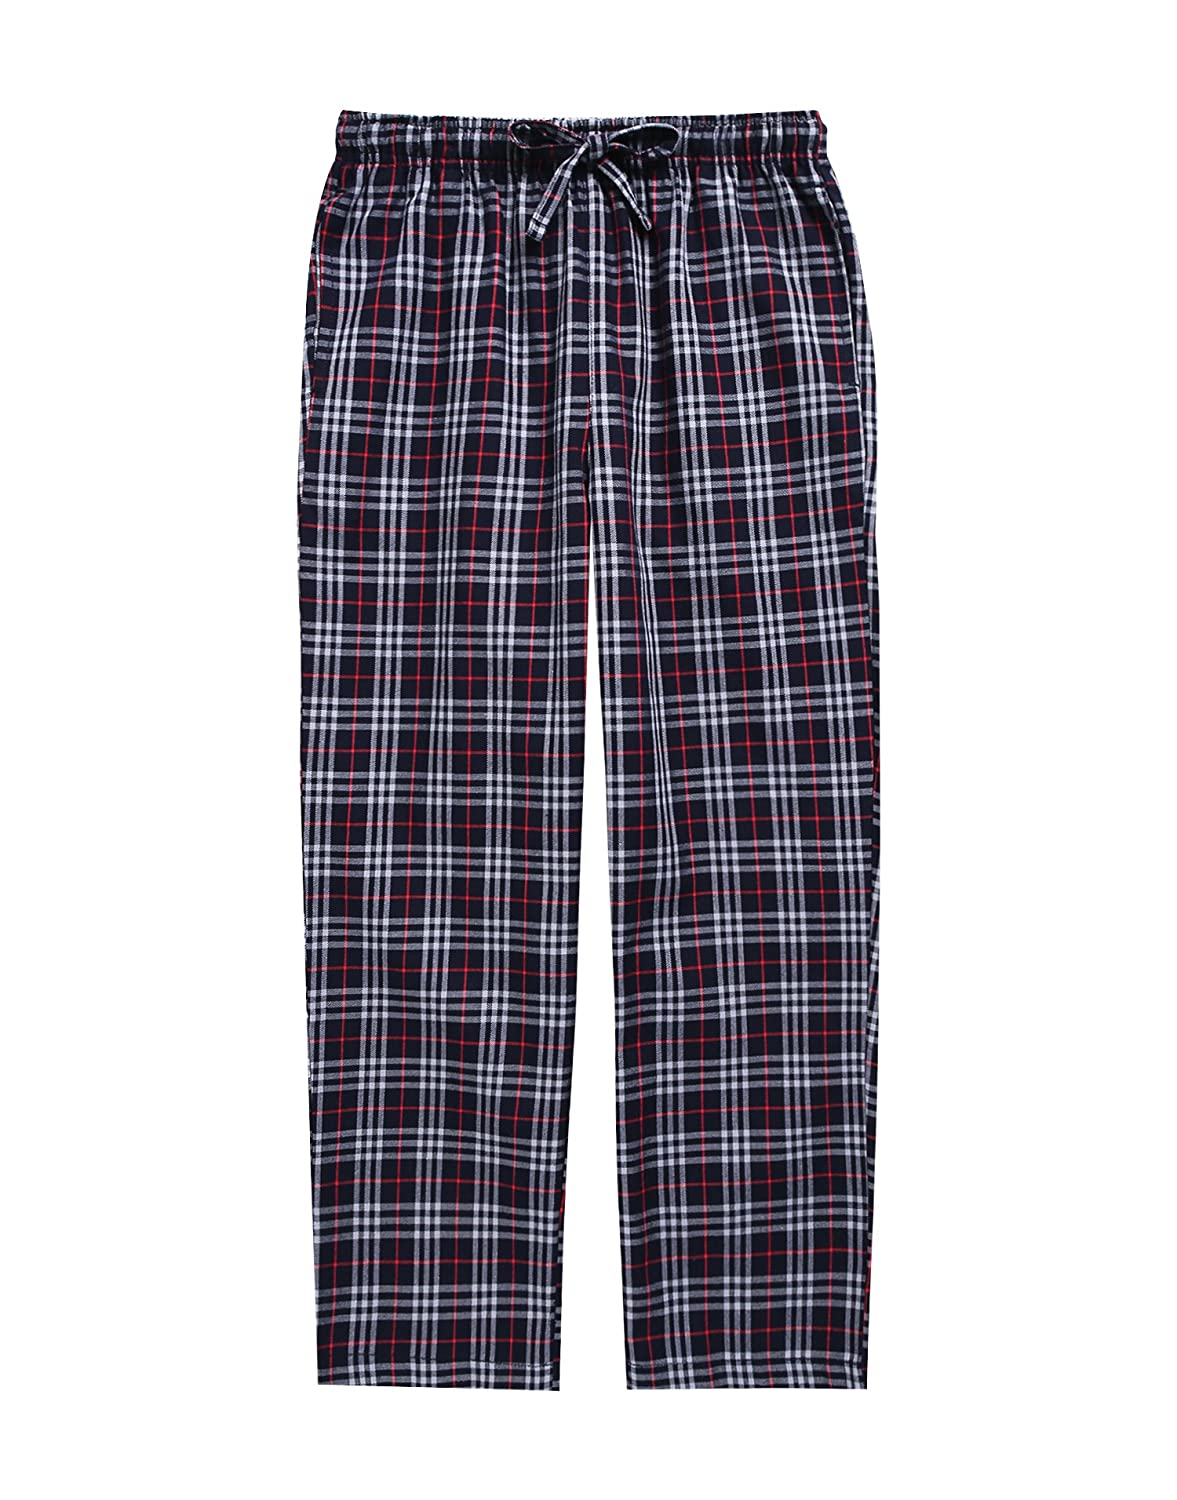 TINFL 6 14 Years Big Boys Plaid Check Soft Lightweight 100% Cotton Lounge Pants